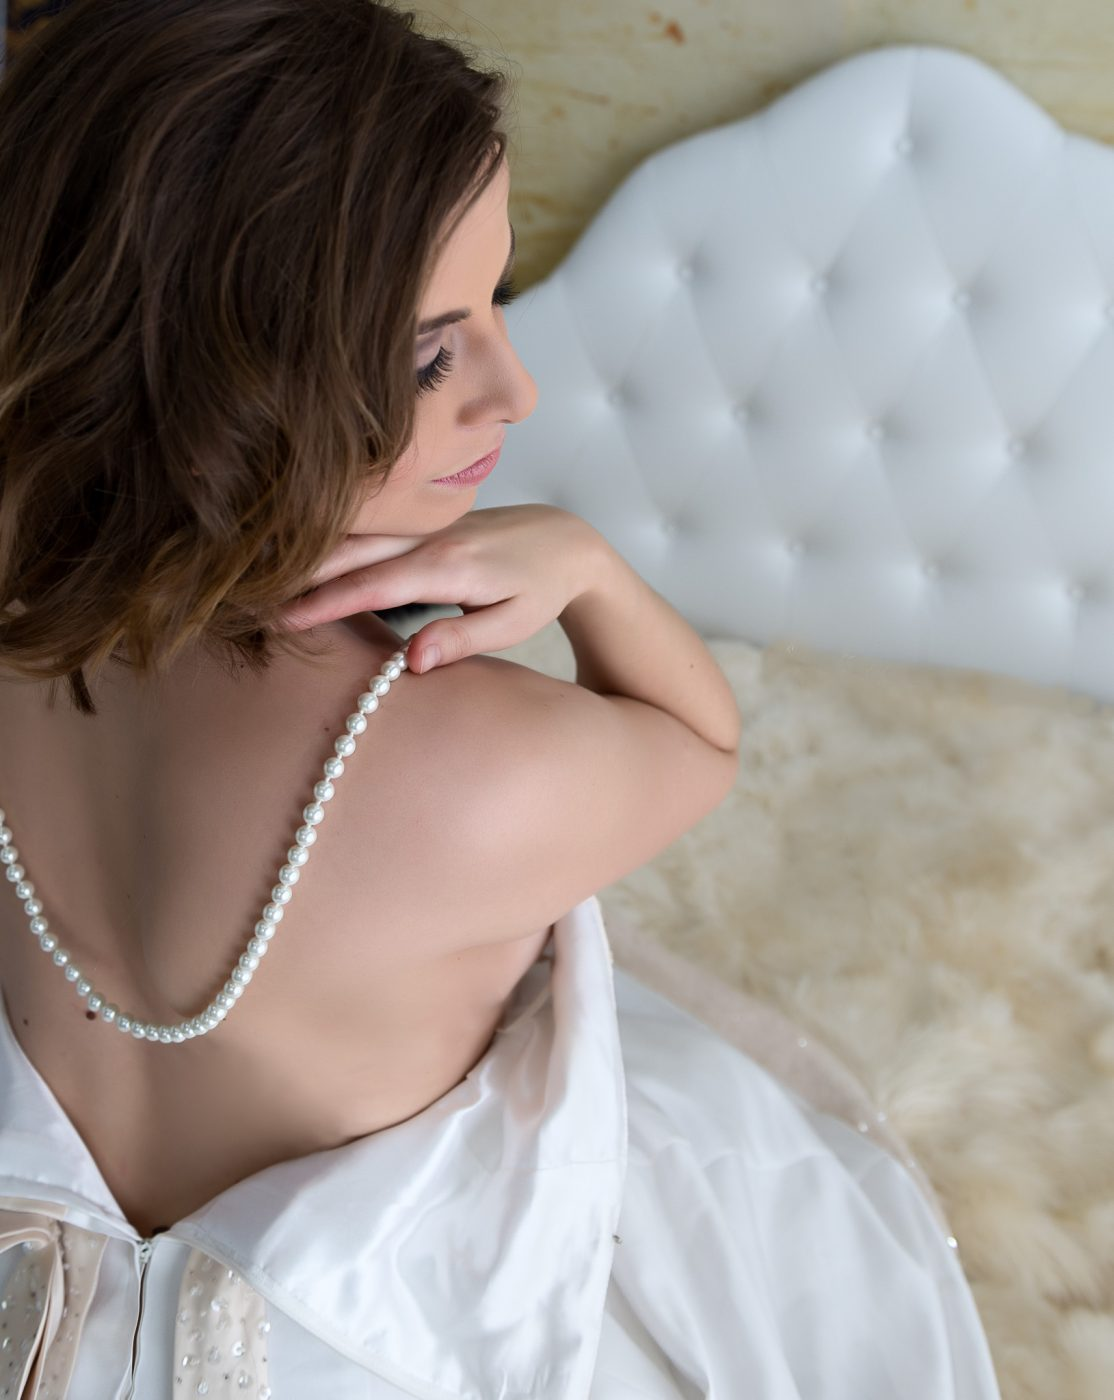 Houston Boudoir Photography Celebrates Your Sexy Self